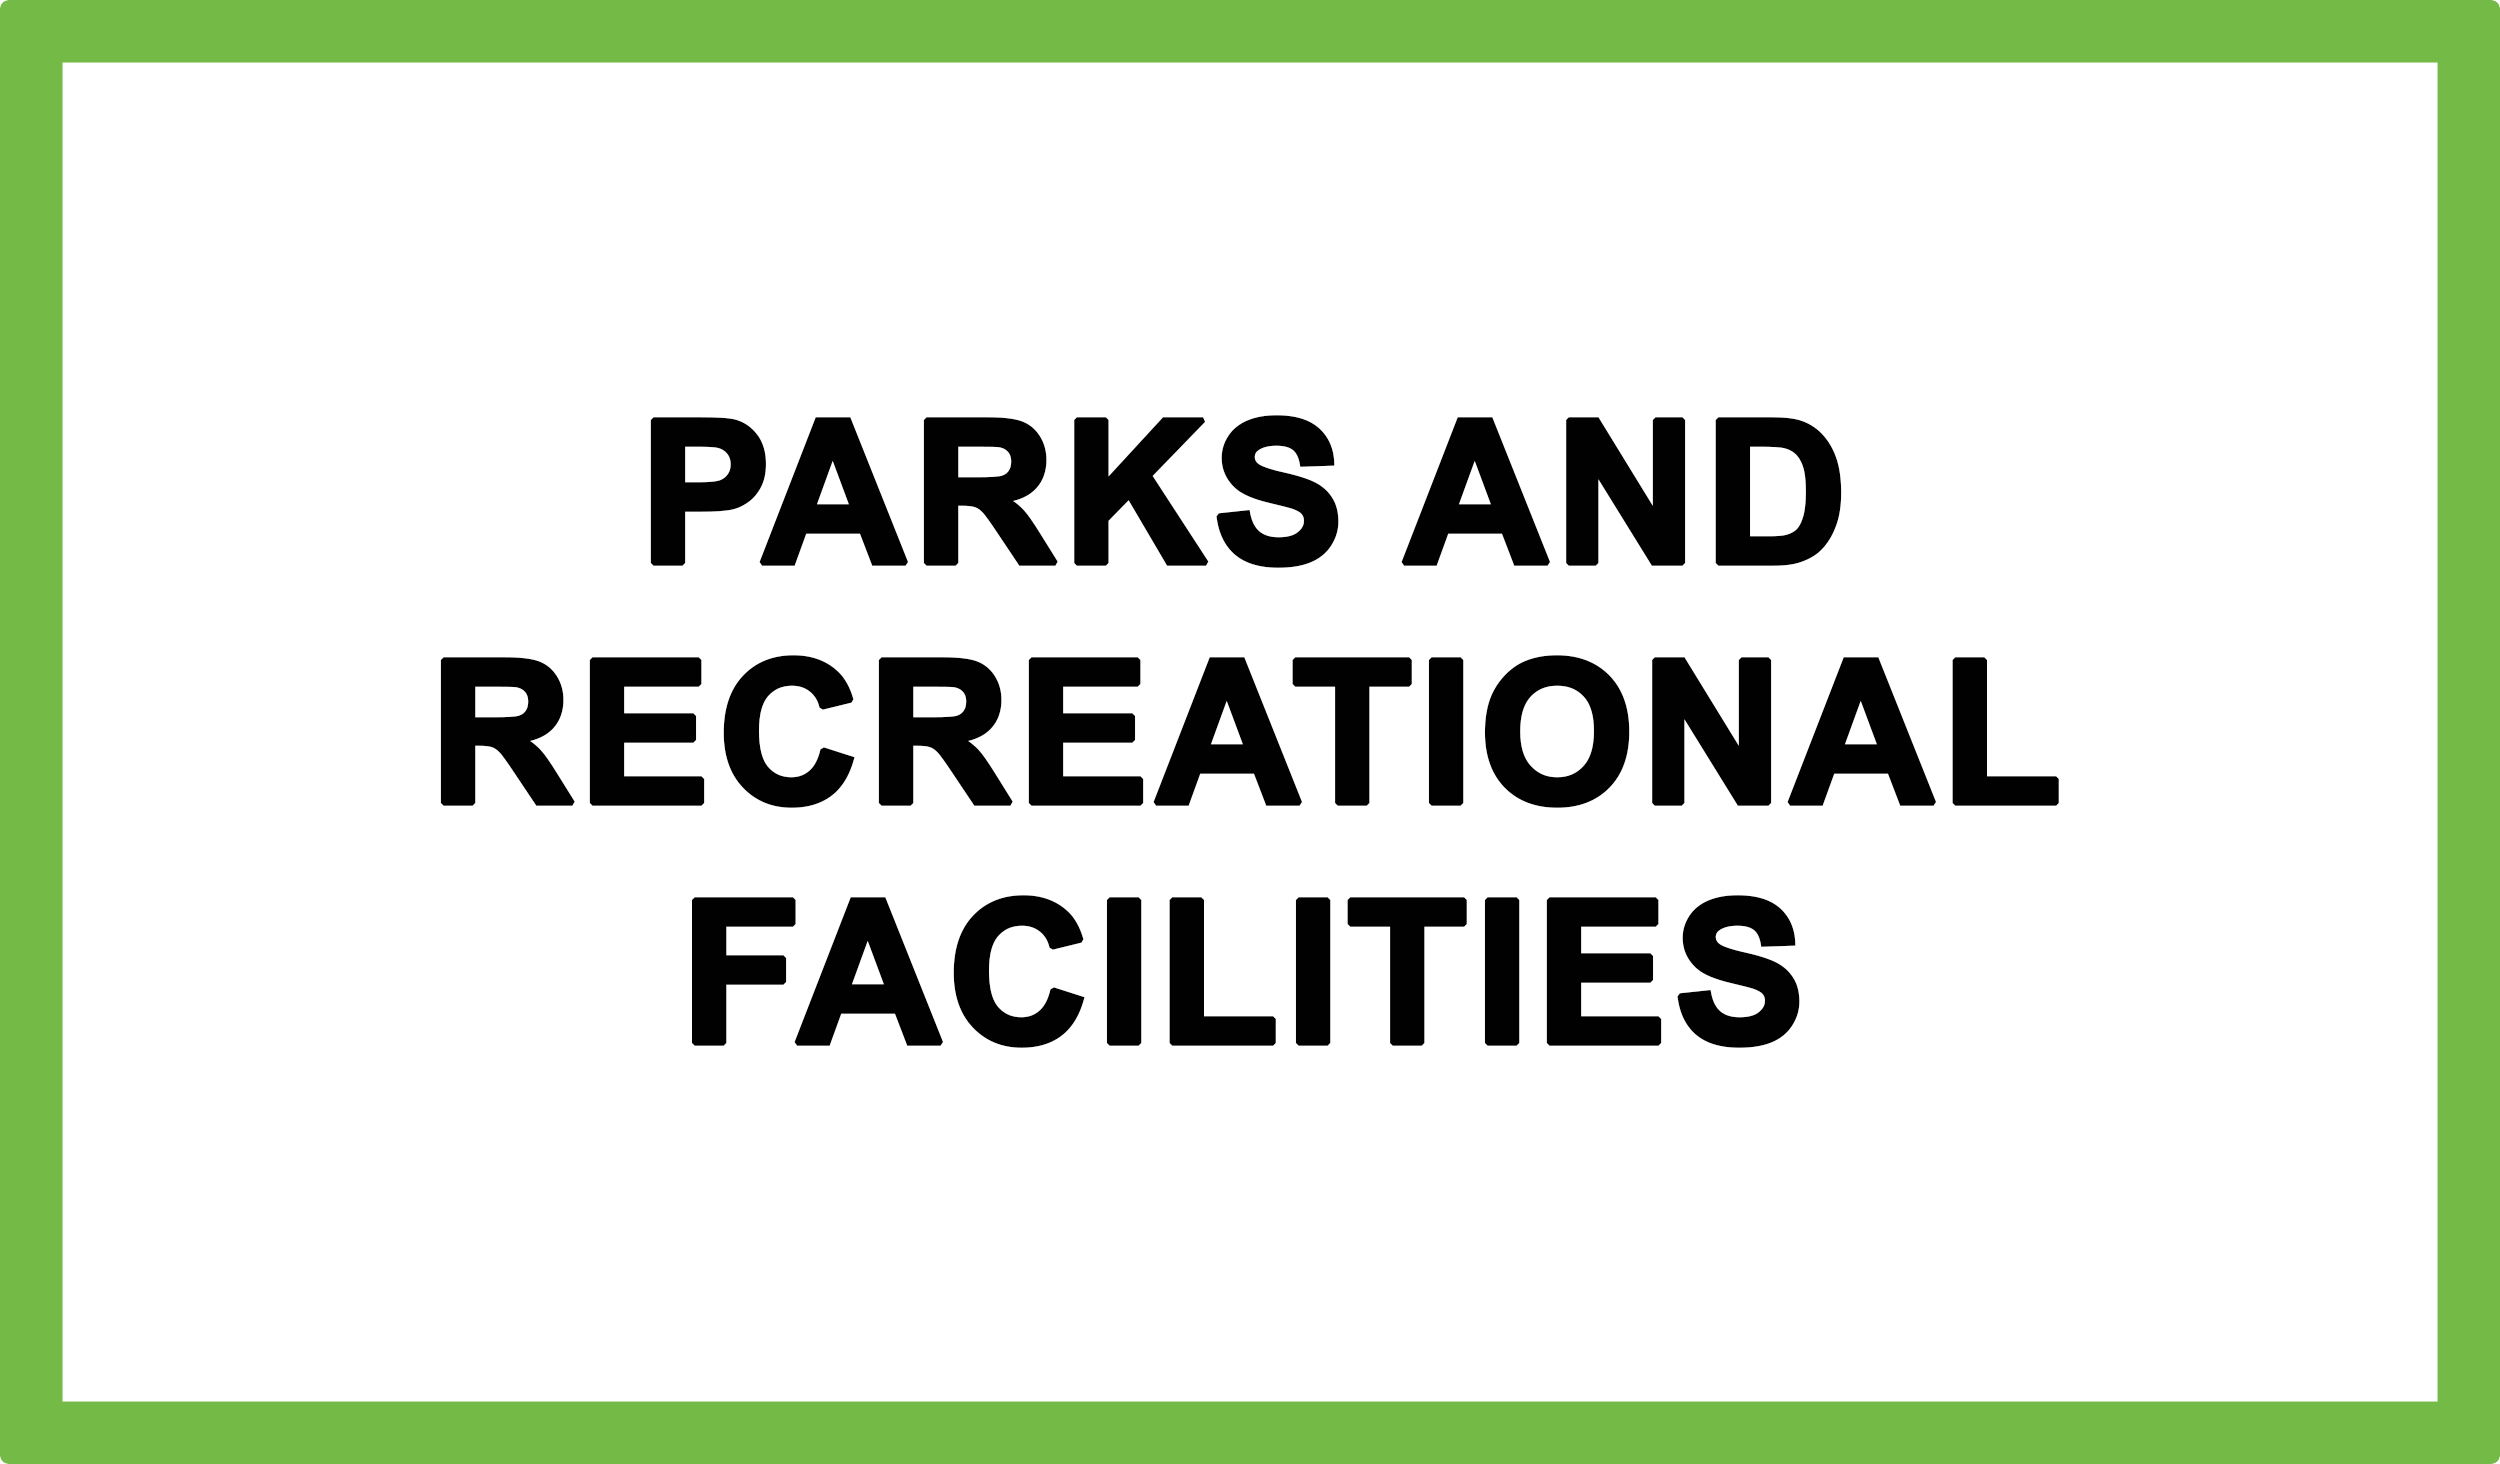 parks_vector_green (1).png